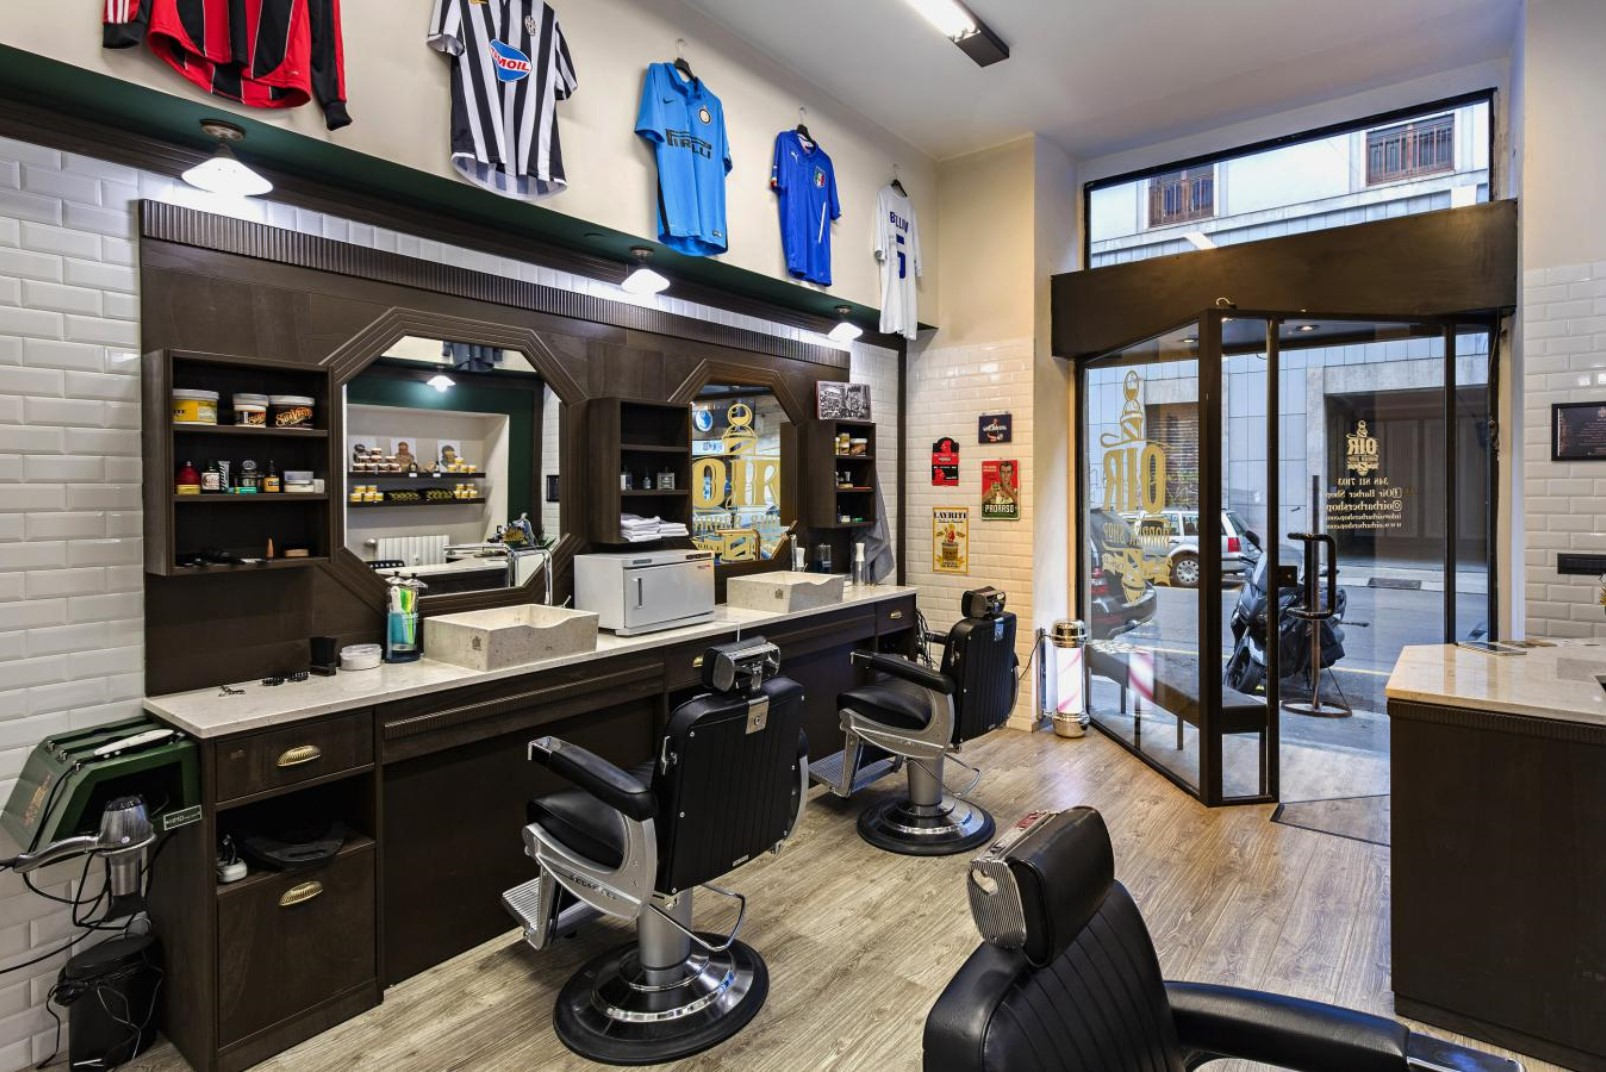 Oir barber shop, Milano